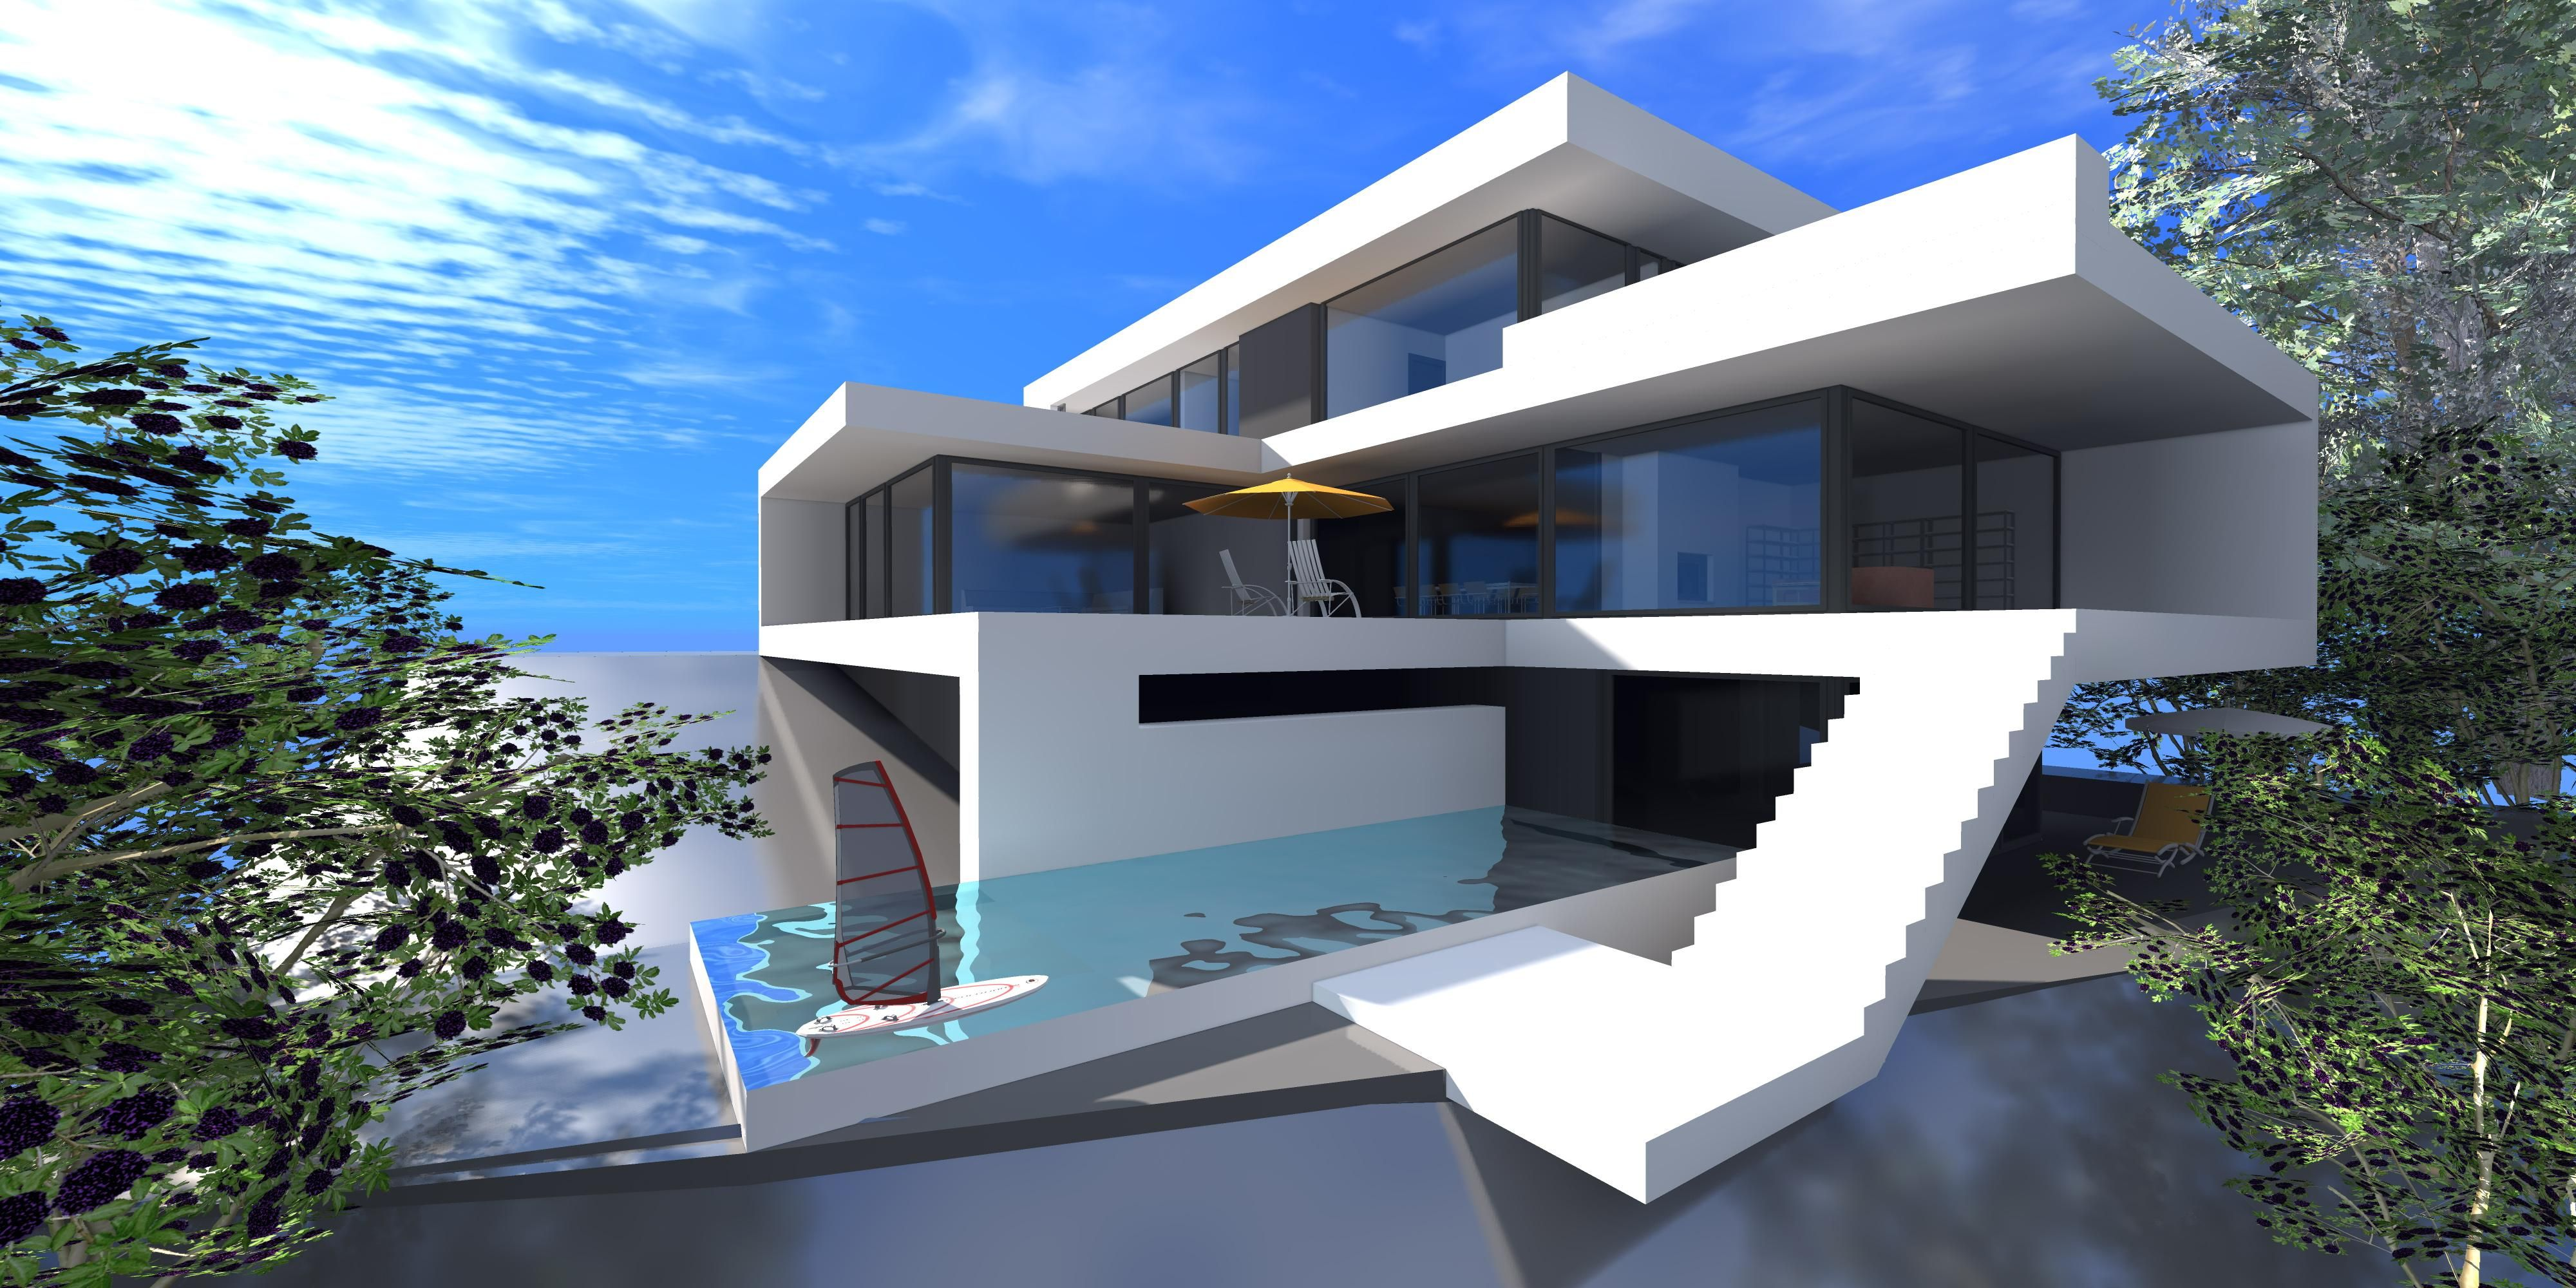 Top modern house in the world most expensive and unique Modern contemporary house plans for sale